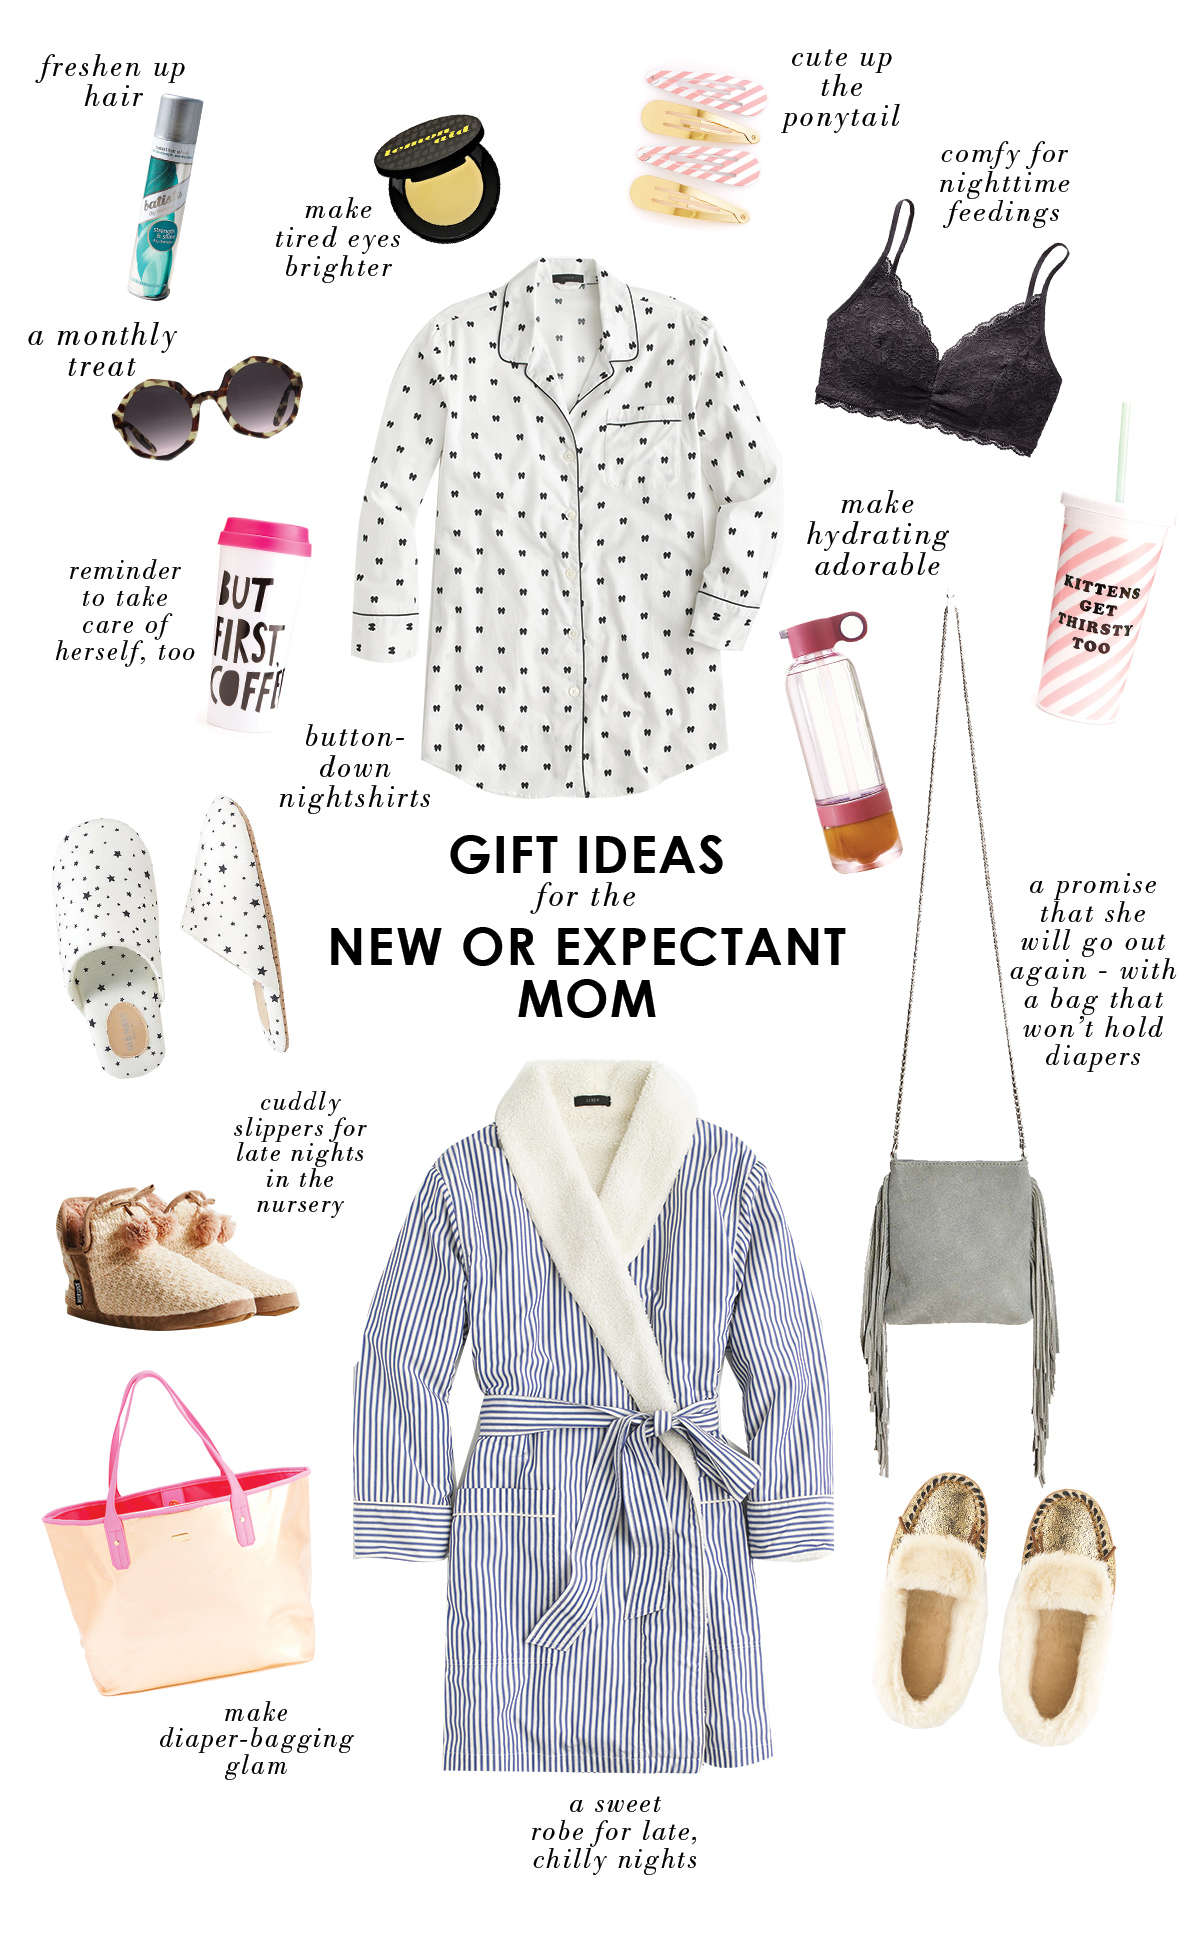 Baby Gifts For Expecting Mothers : Gift ideas for a new or expectant mom lay baby